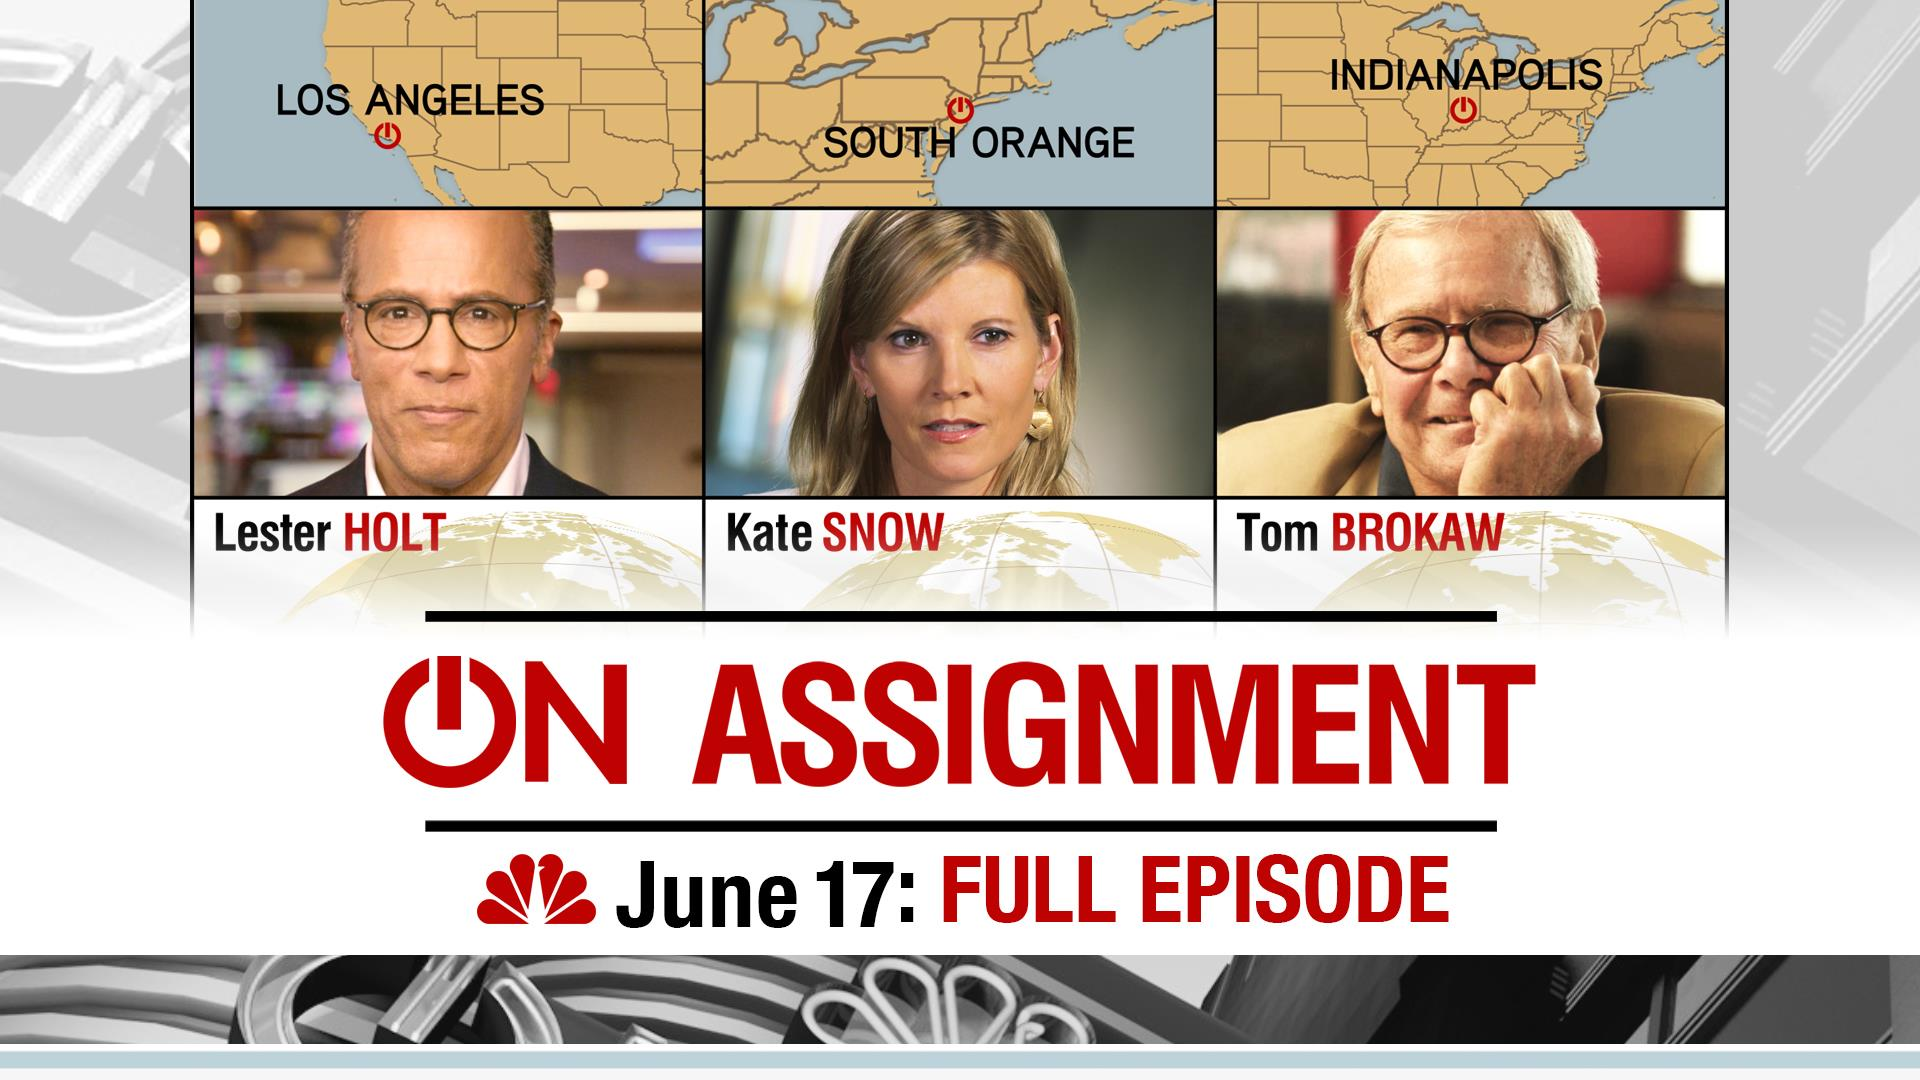 FULL EPISODE: On Assignment June 17th